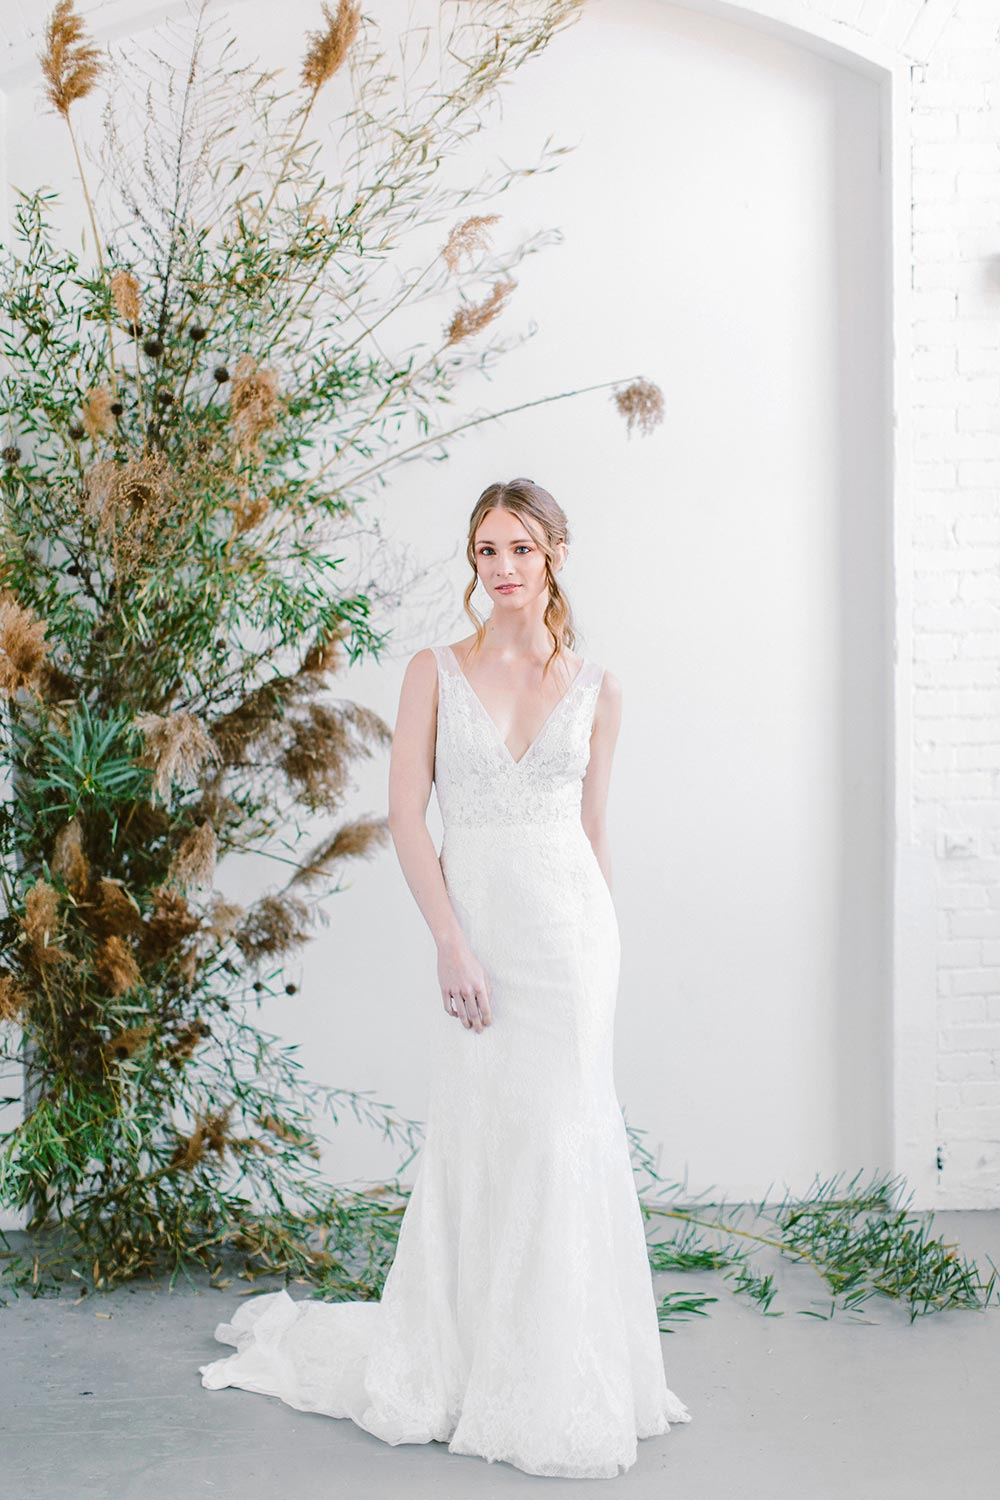 sheer v-neck lace wedding dress with fluted skirt and pampas grass backdrop